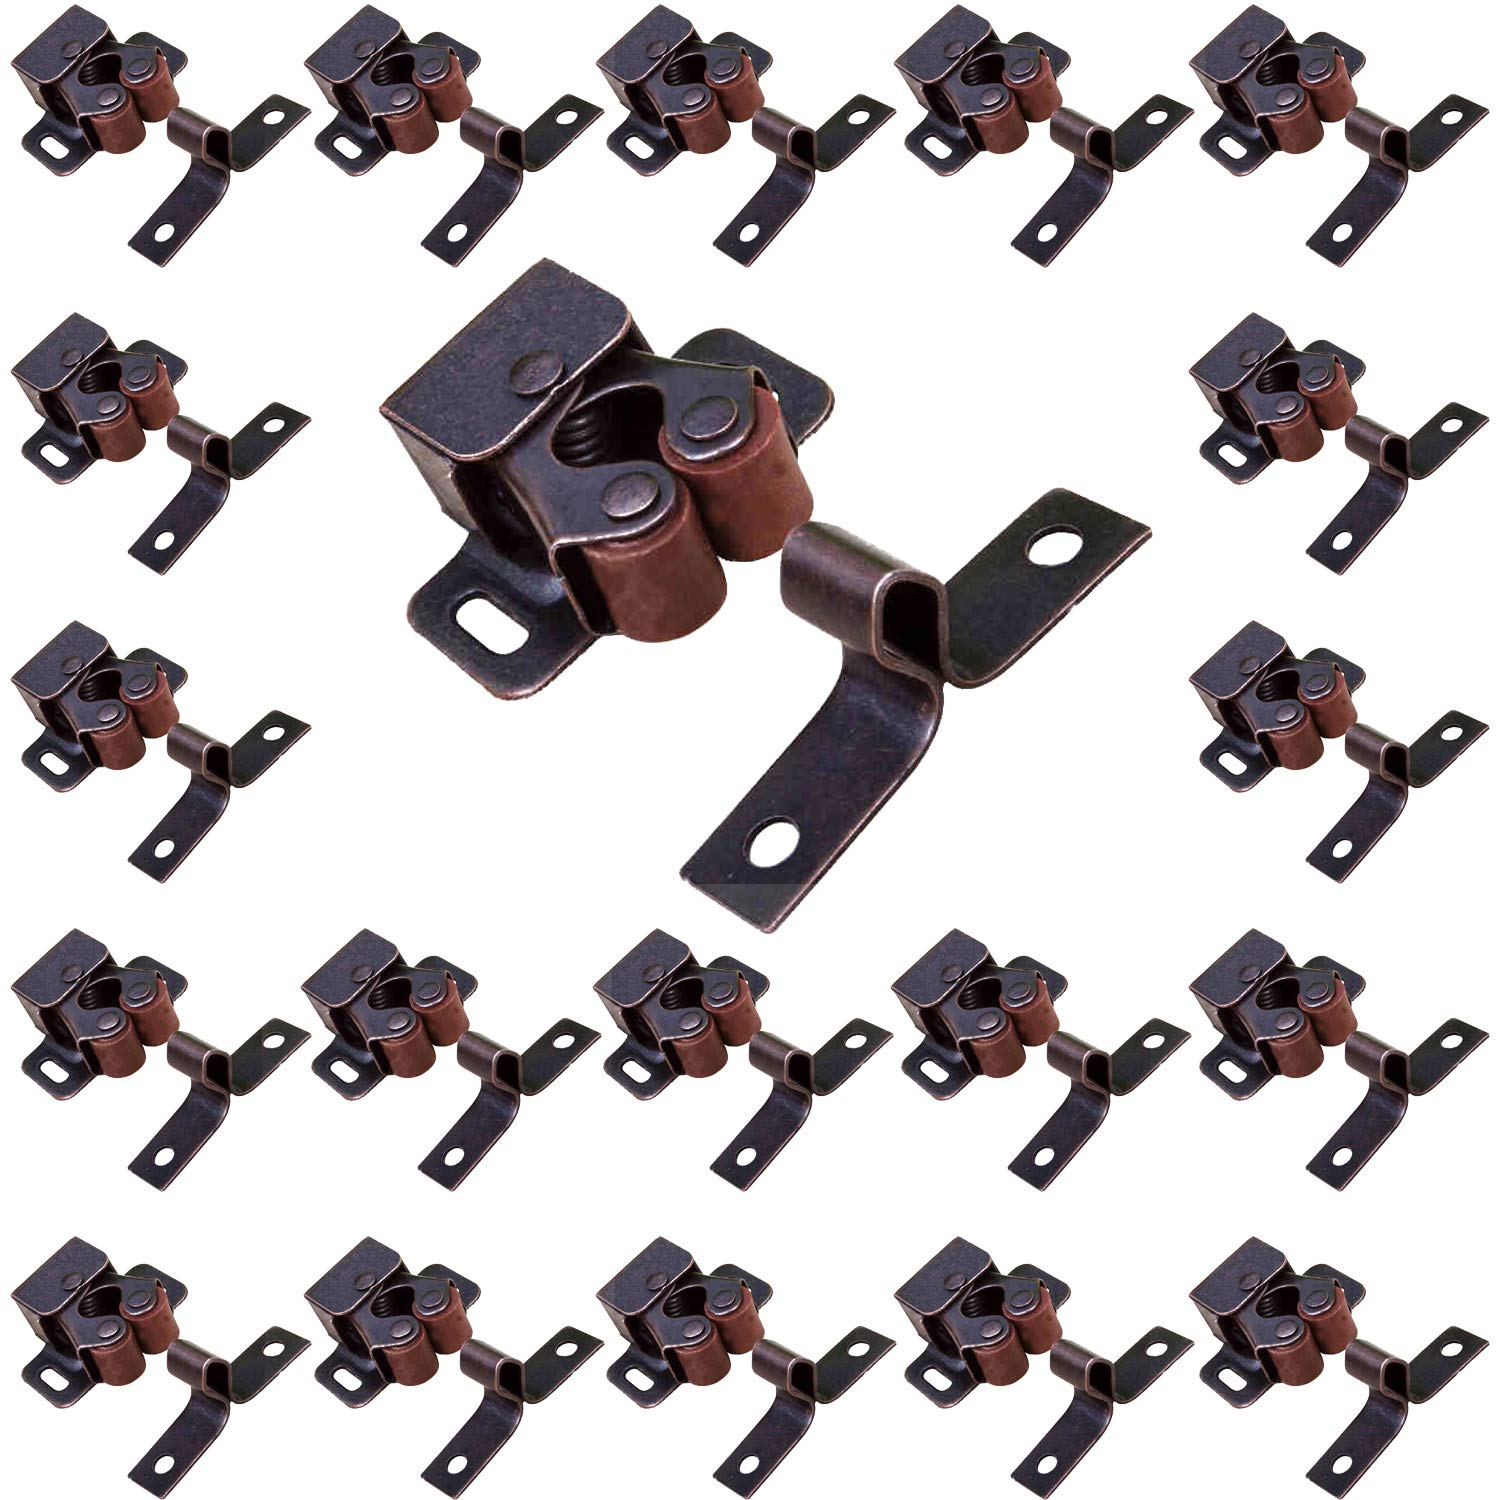 Gizhome 20 Pack Antique Bronzed Double Ball Roller Catch for Closet Door and Cabinet Cupboard Cabinet Door Tension Catch Latch